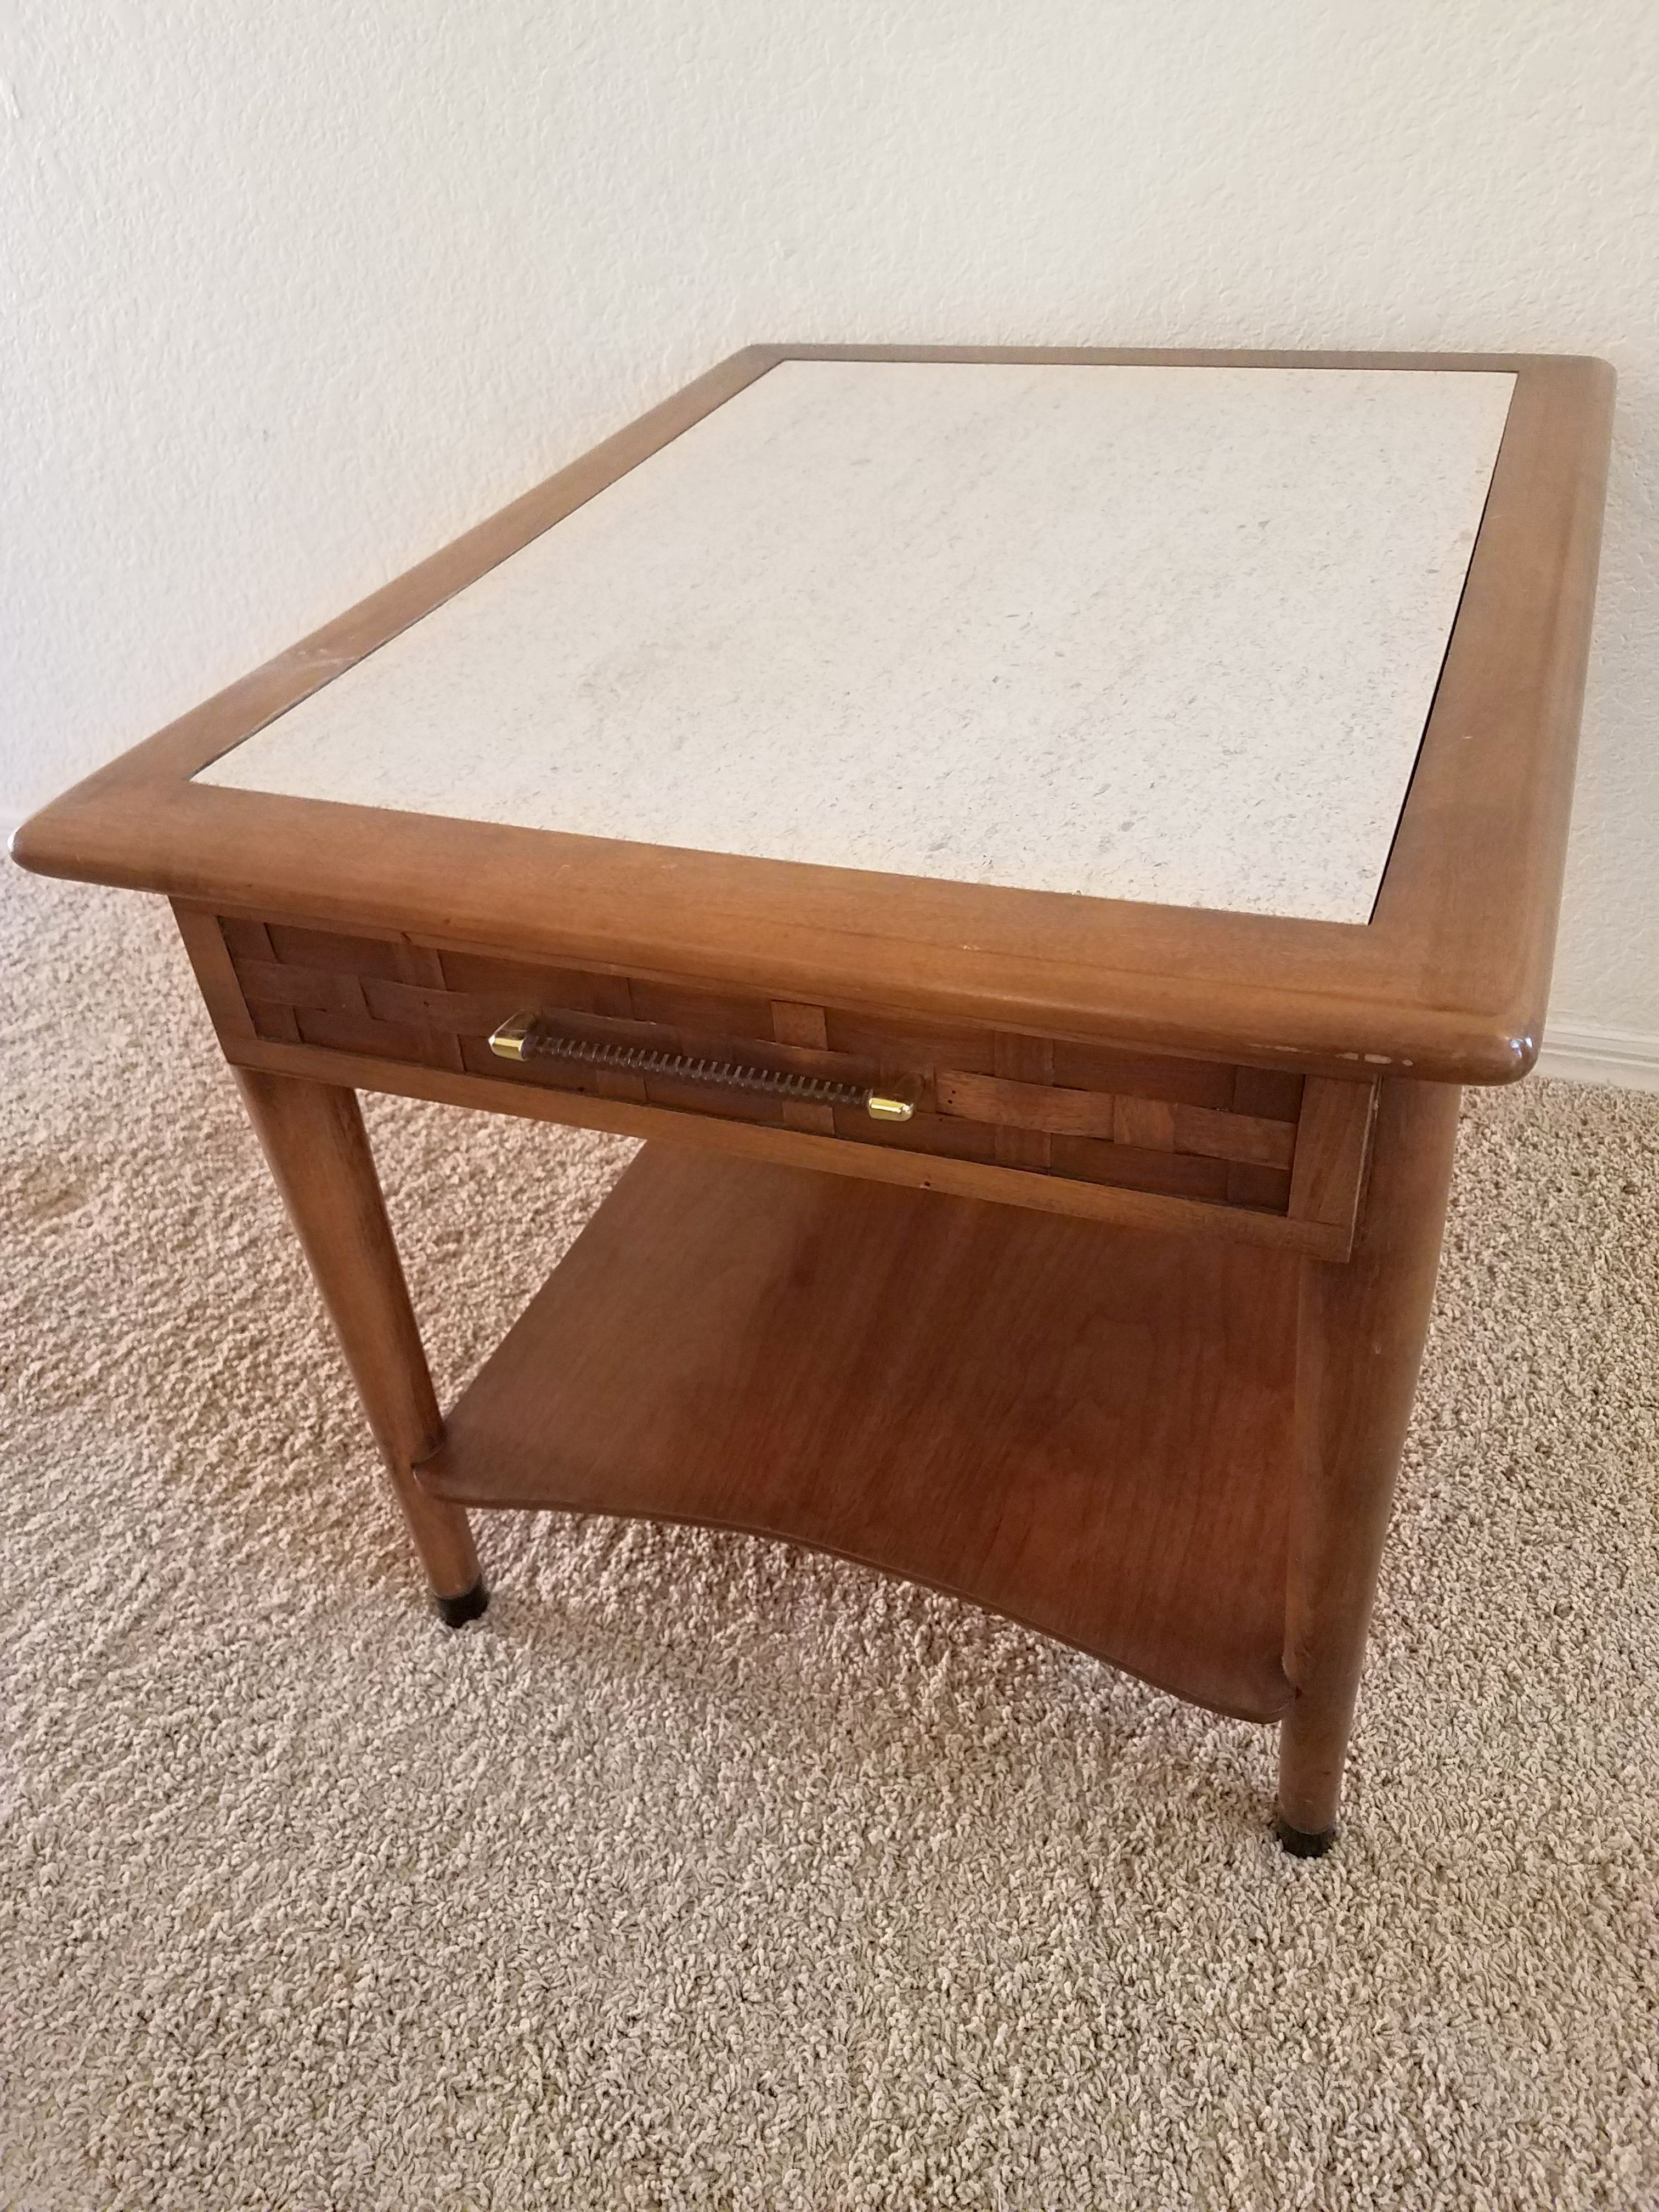 mid century end table with a marble top and a basket weave drawer rh pinterest com